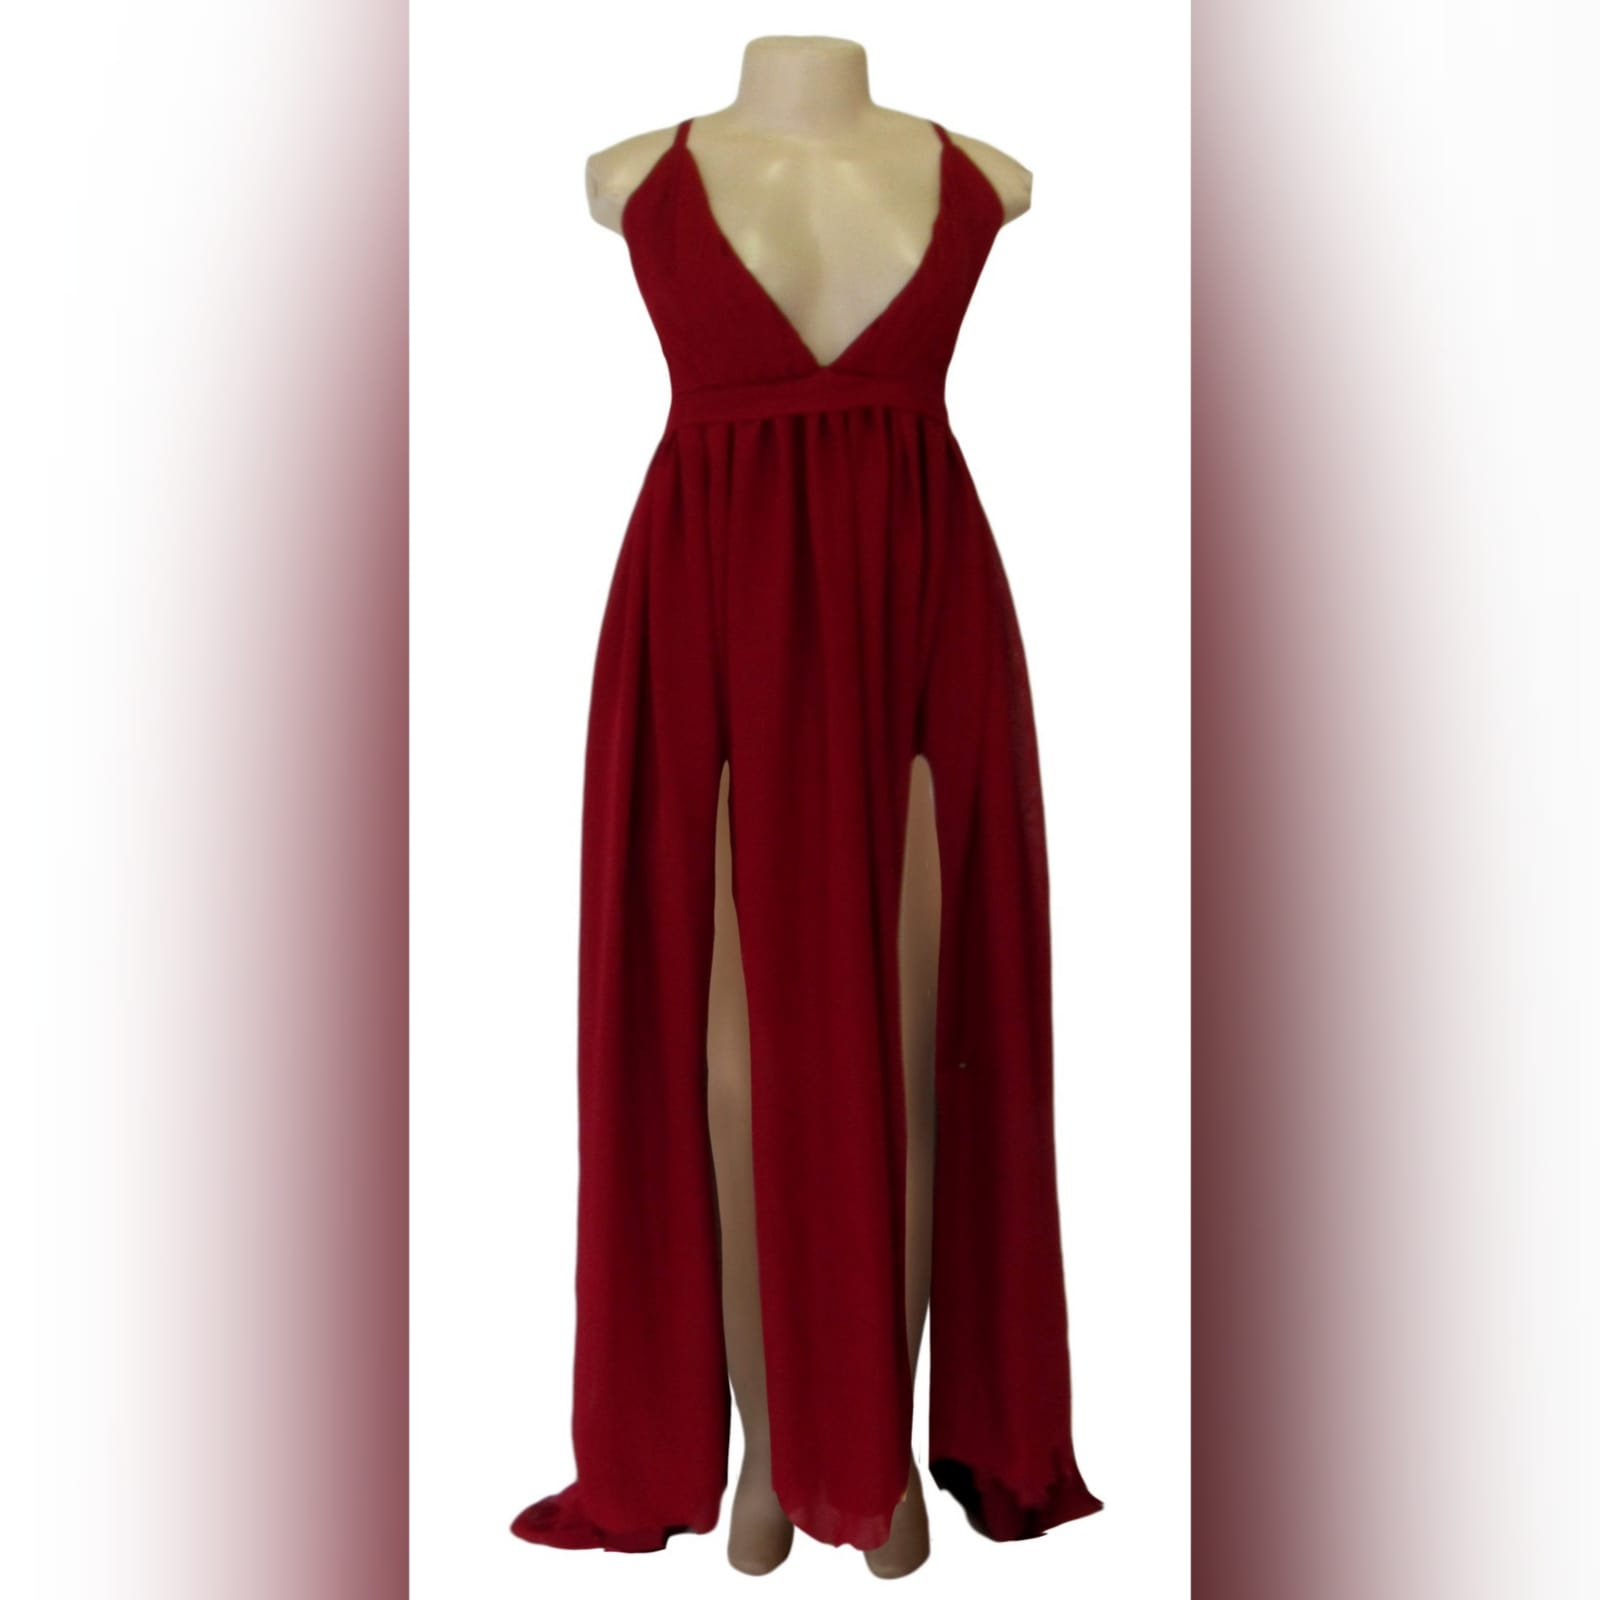 Red long chiffon formal dress 5 red long chiffon formal dress with a v neckline, 2 high slits, rounded open back with thin crossed shoulder straps.